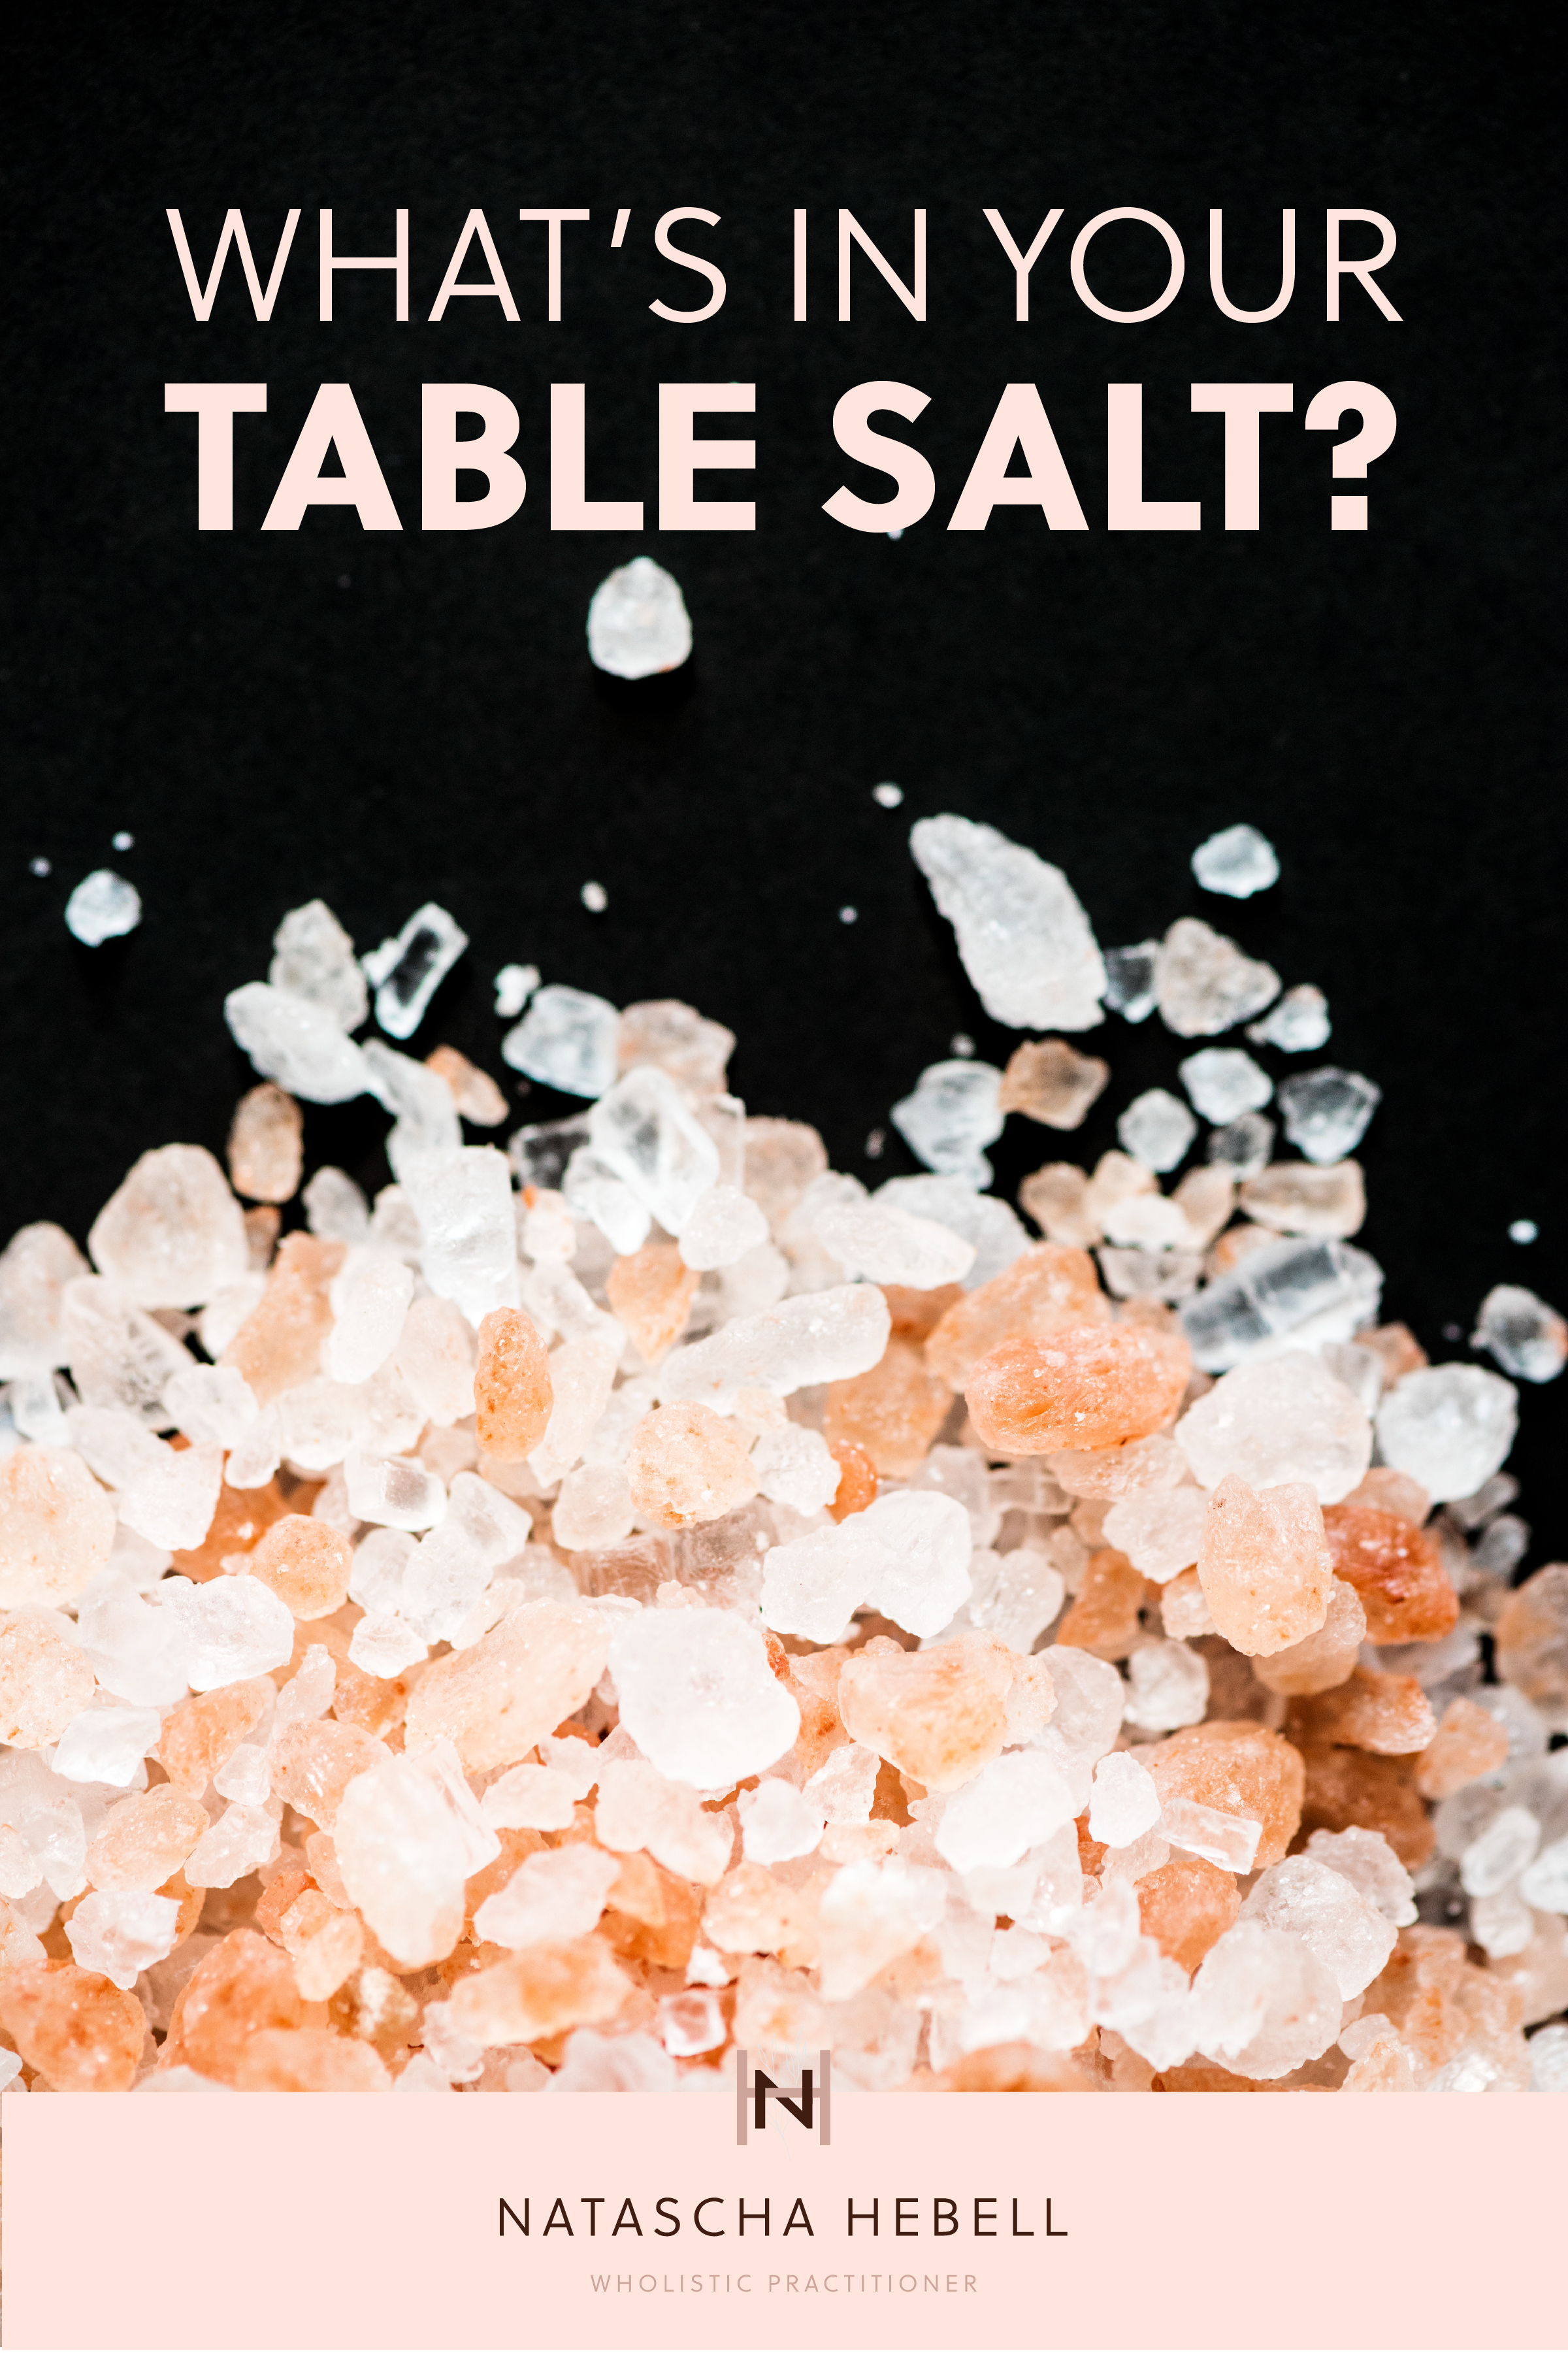 What's in your table salt | Natascha Hebell, Wholistic Practitioner